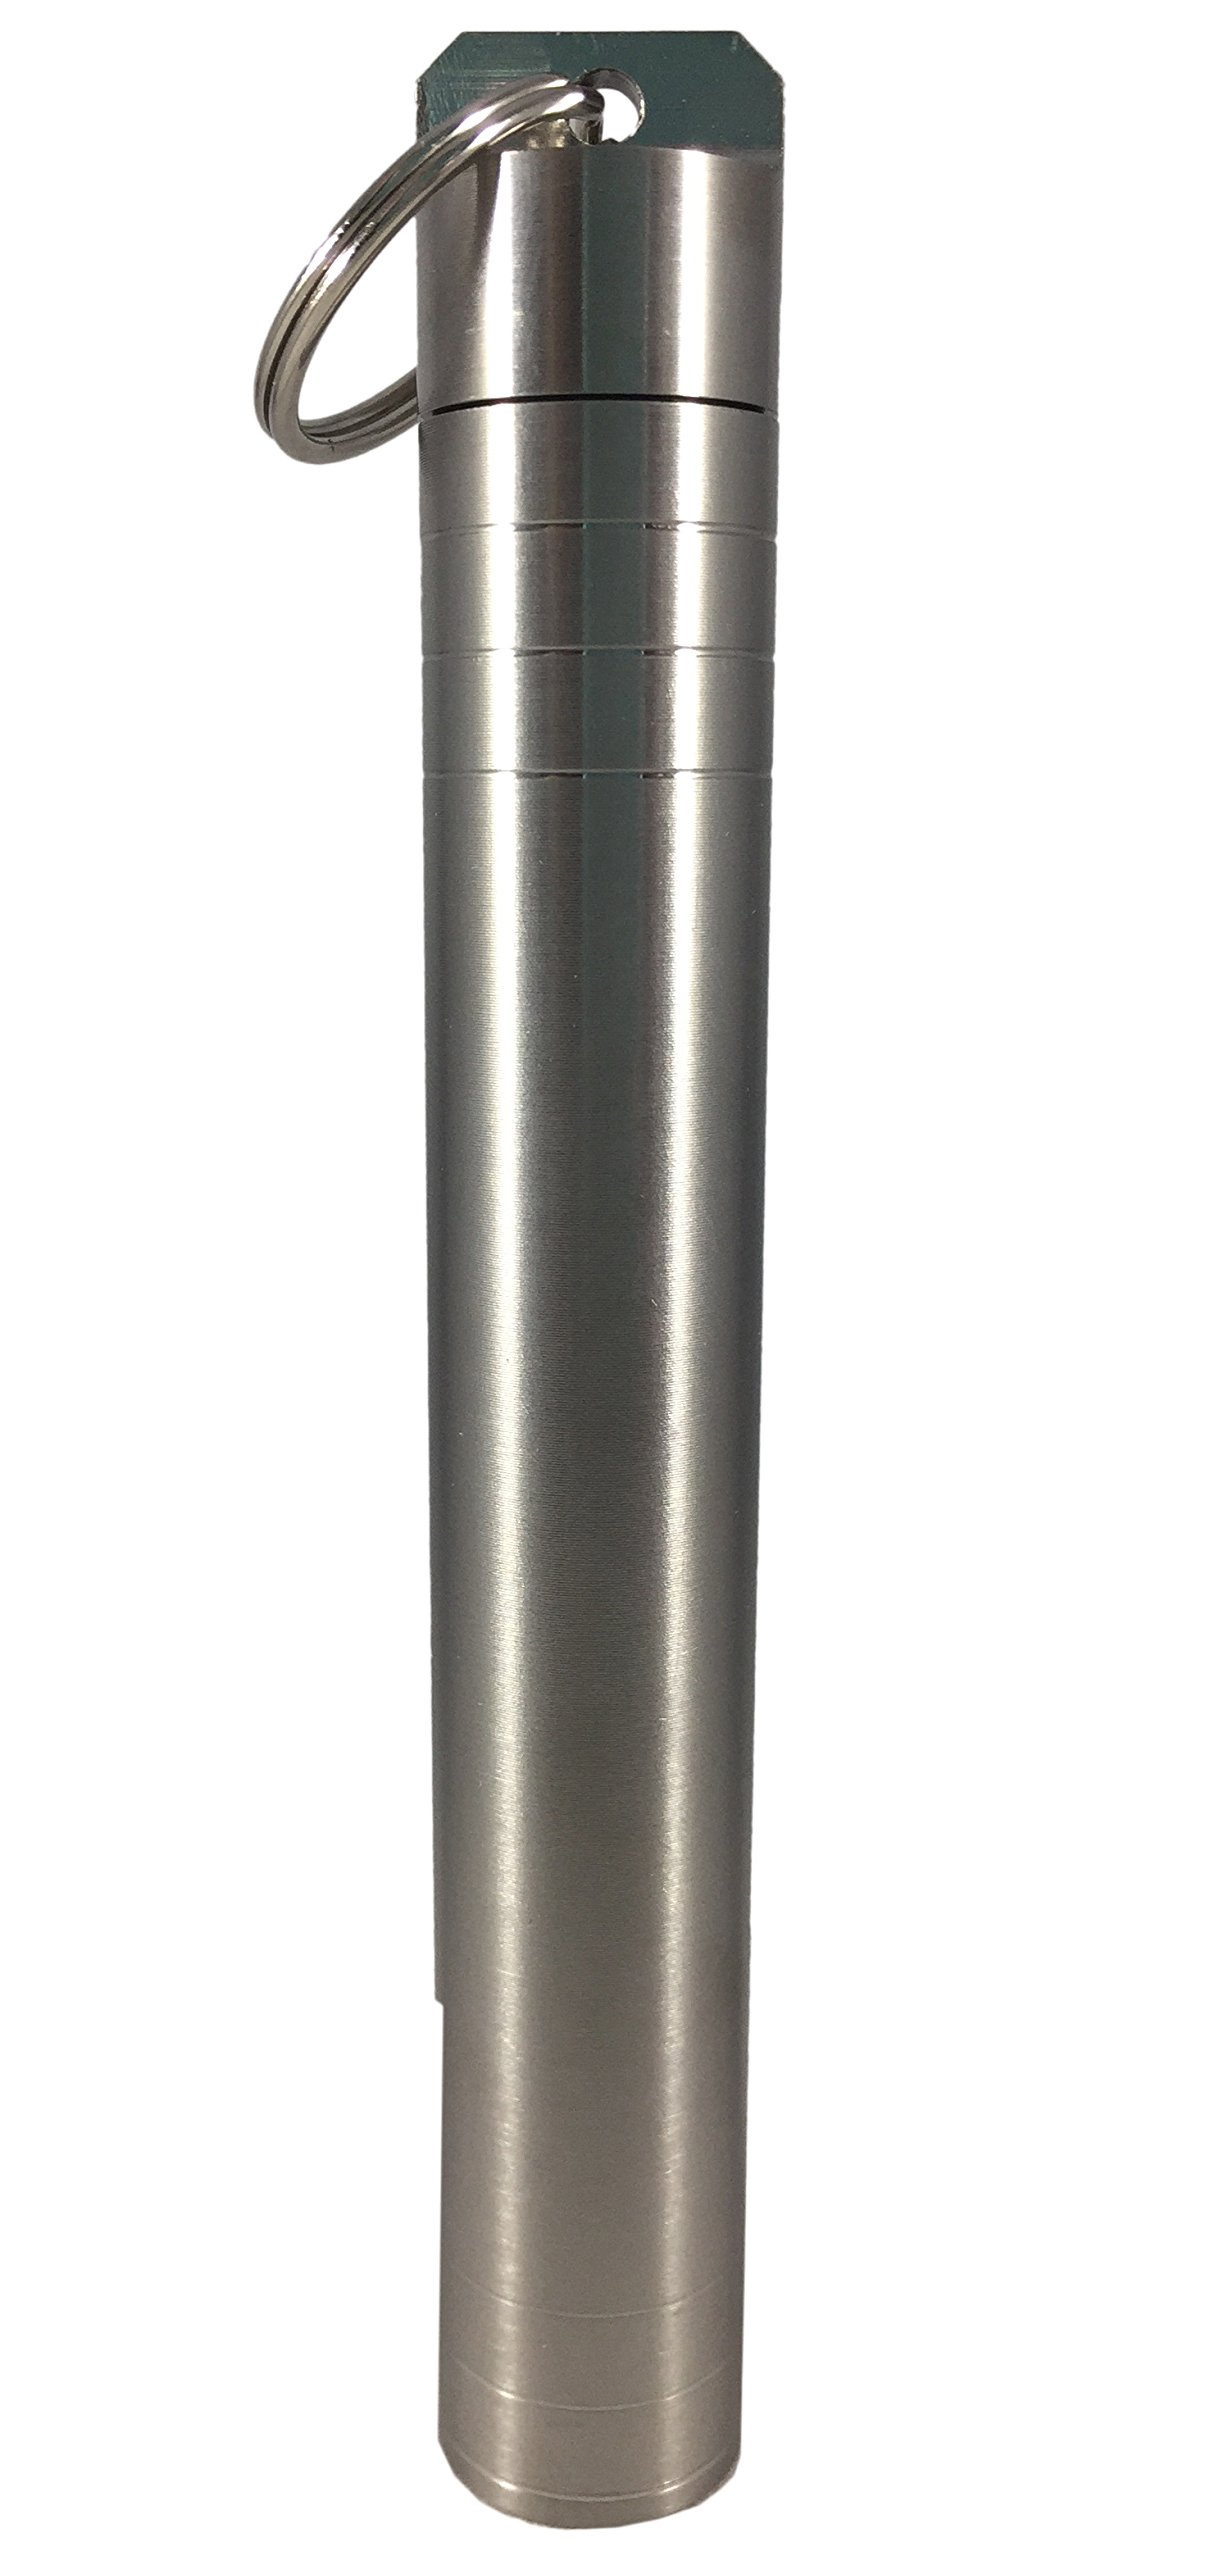 Titanium Doobie Tube, Waterproof, Airtight, Smell Odor Proof, Indestructible Keychain Storage Container Case for Large Joints or Pre-Rolled Cigarettes